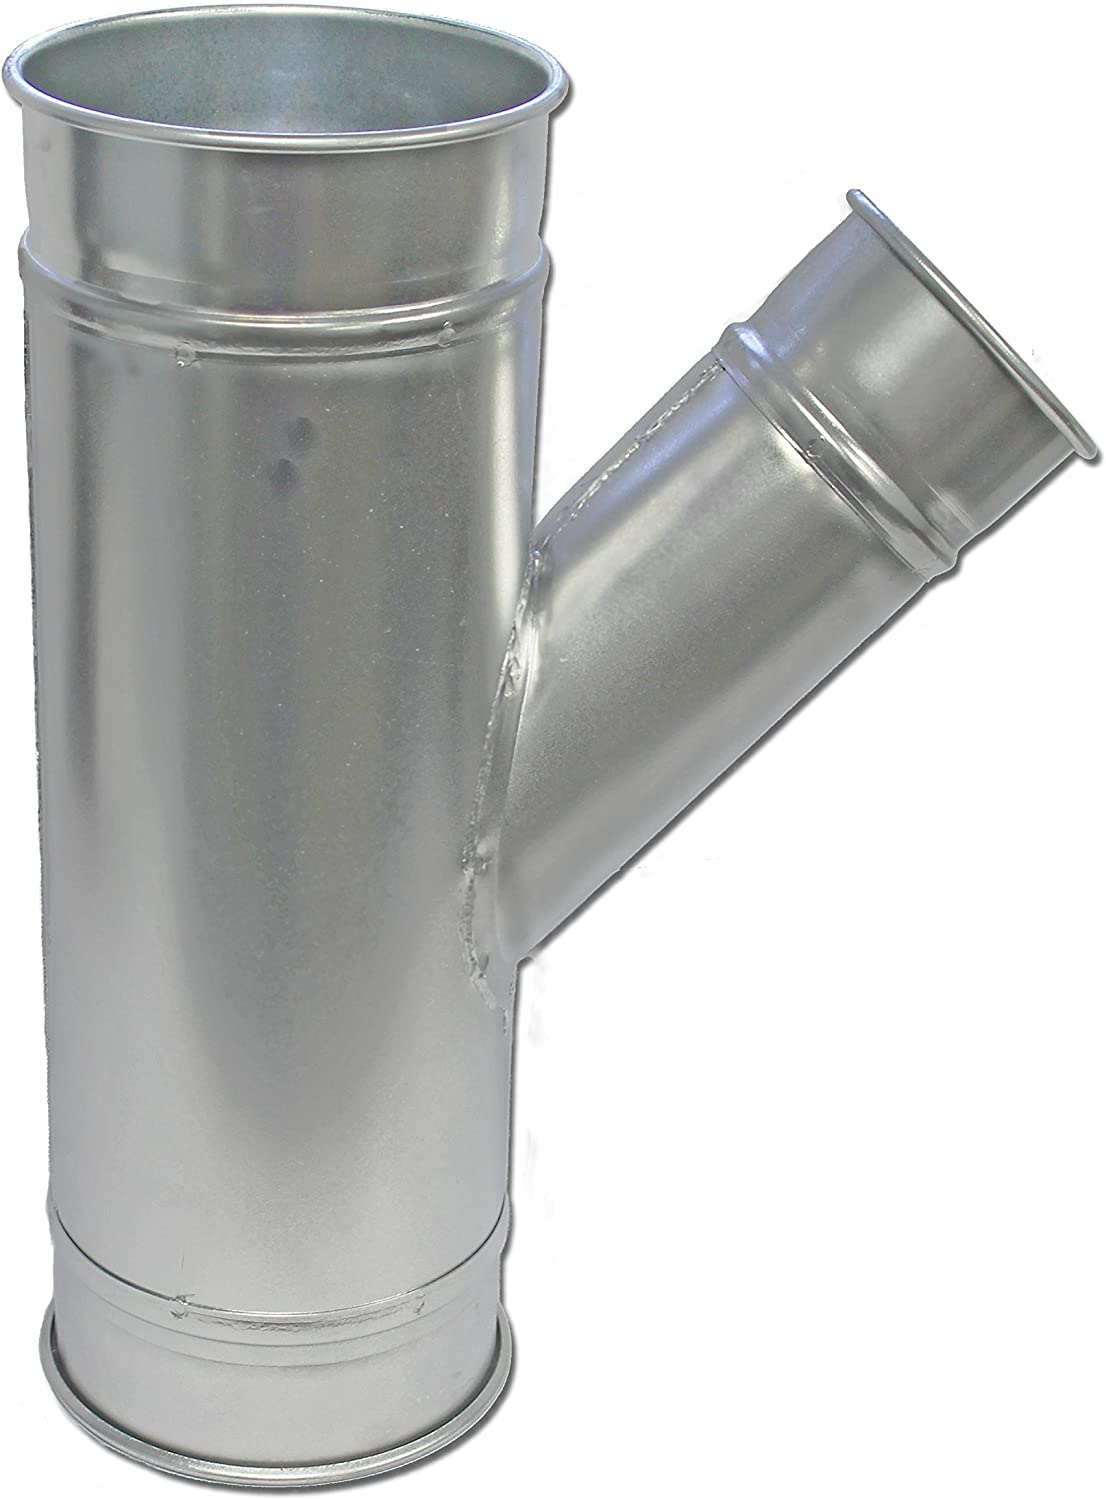 U-Duct - Dust OFFicial mail New mail order order Collection Branch Fitting 10 9 Clamp-to 4 x for